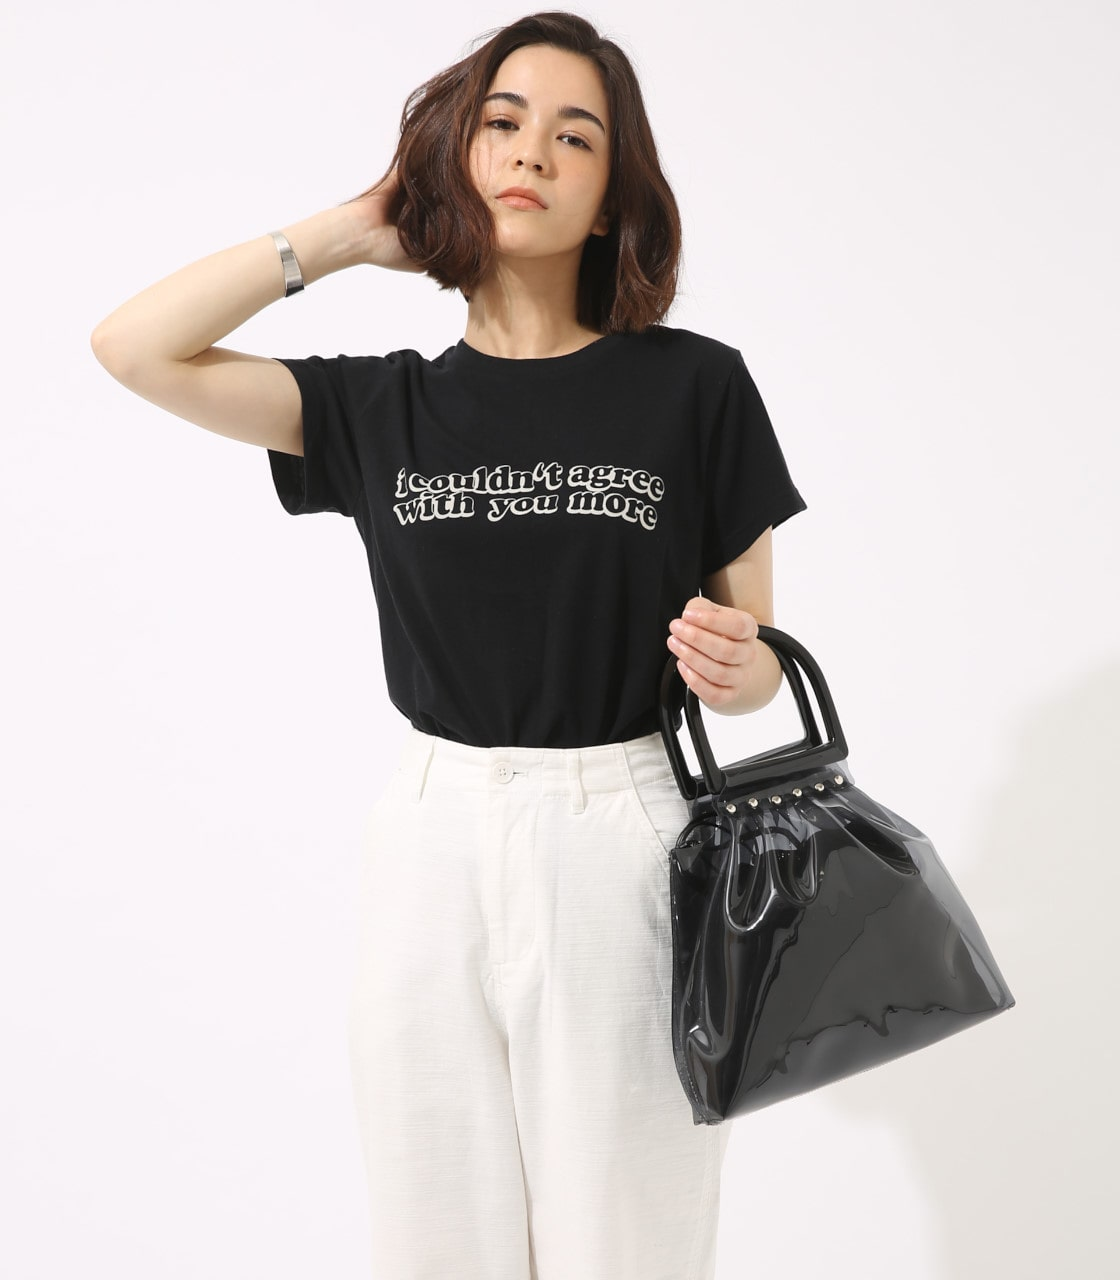 【AZUL BY MOUSSY】With you more TEE 詳細画像 BLK 3